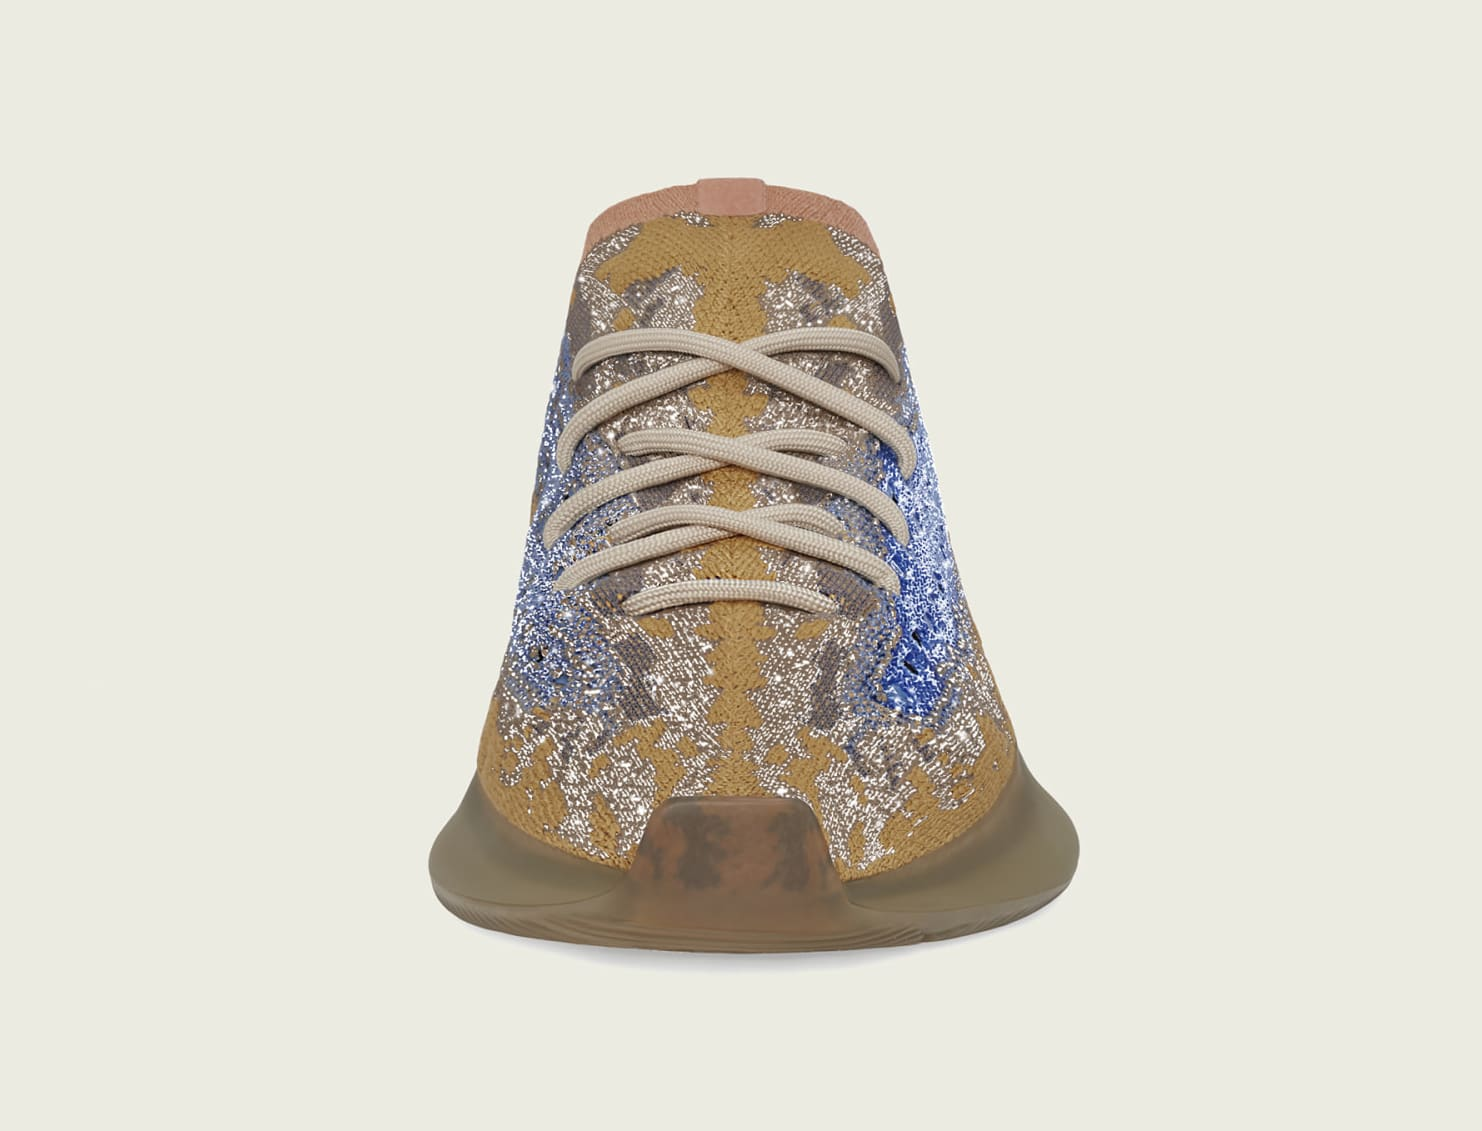 Adidas Yeezy Boost 380 'Blue Oat' Reflective FX9847 Front